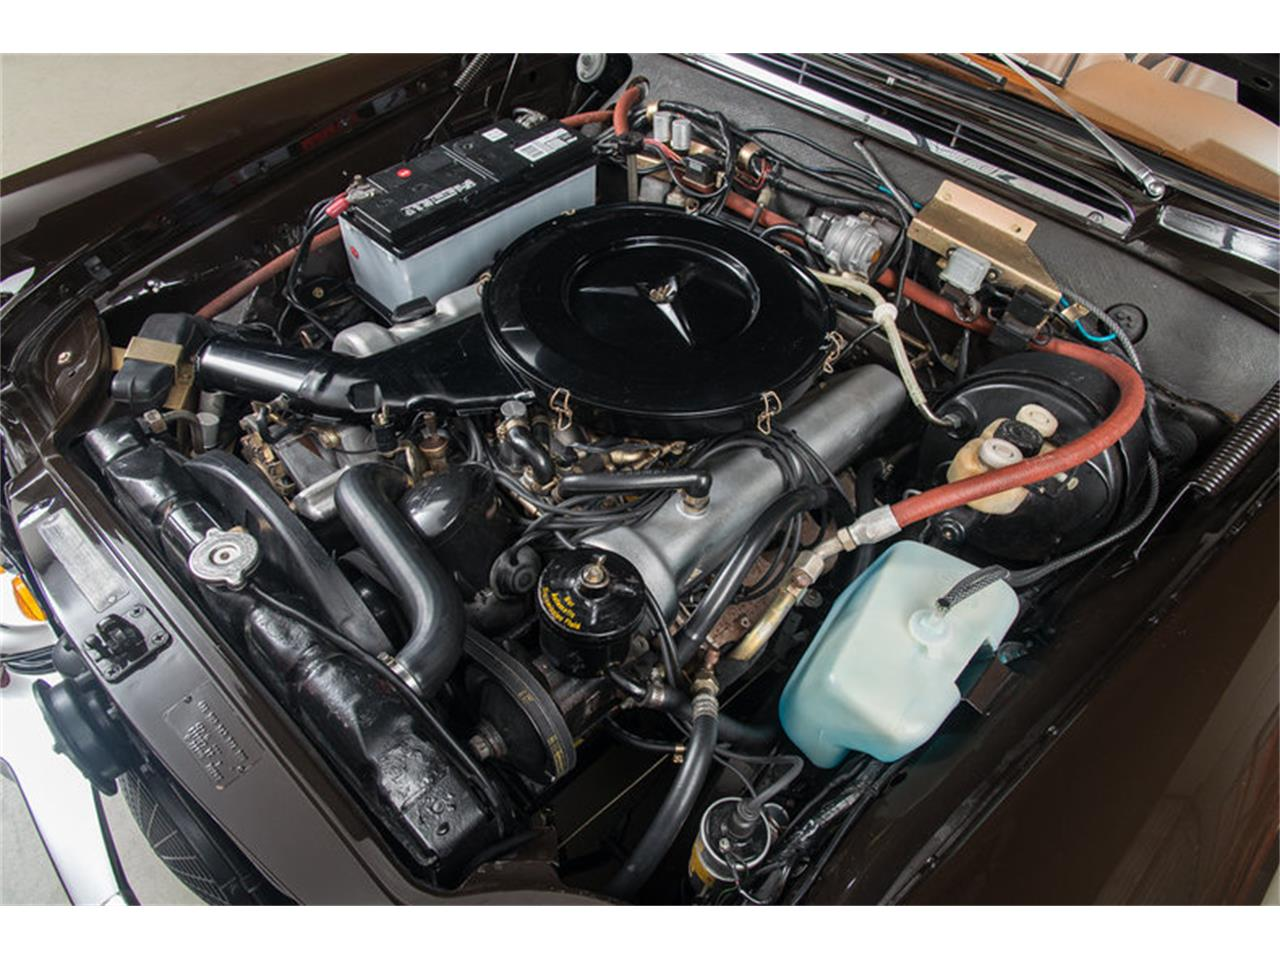 Large Picture of Classic 1971 Mercedes-Benz 280 SE 3.5 Cabriolet located in Scotts Valley California Auction Vehicle Offered by Canepa - G0JQ